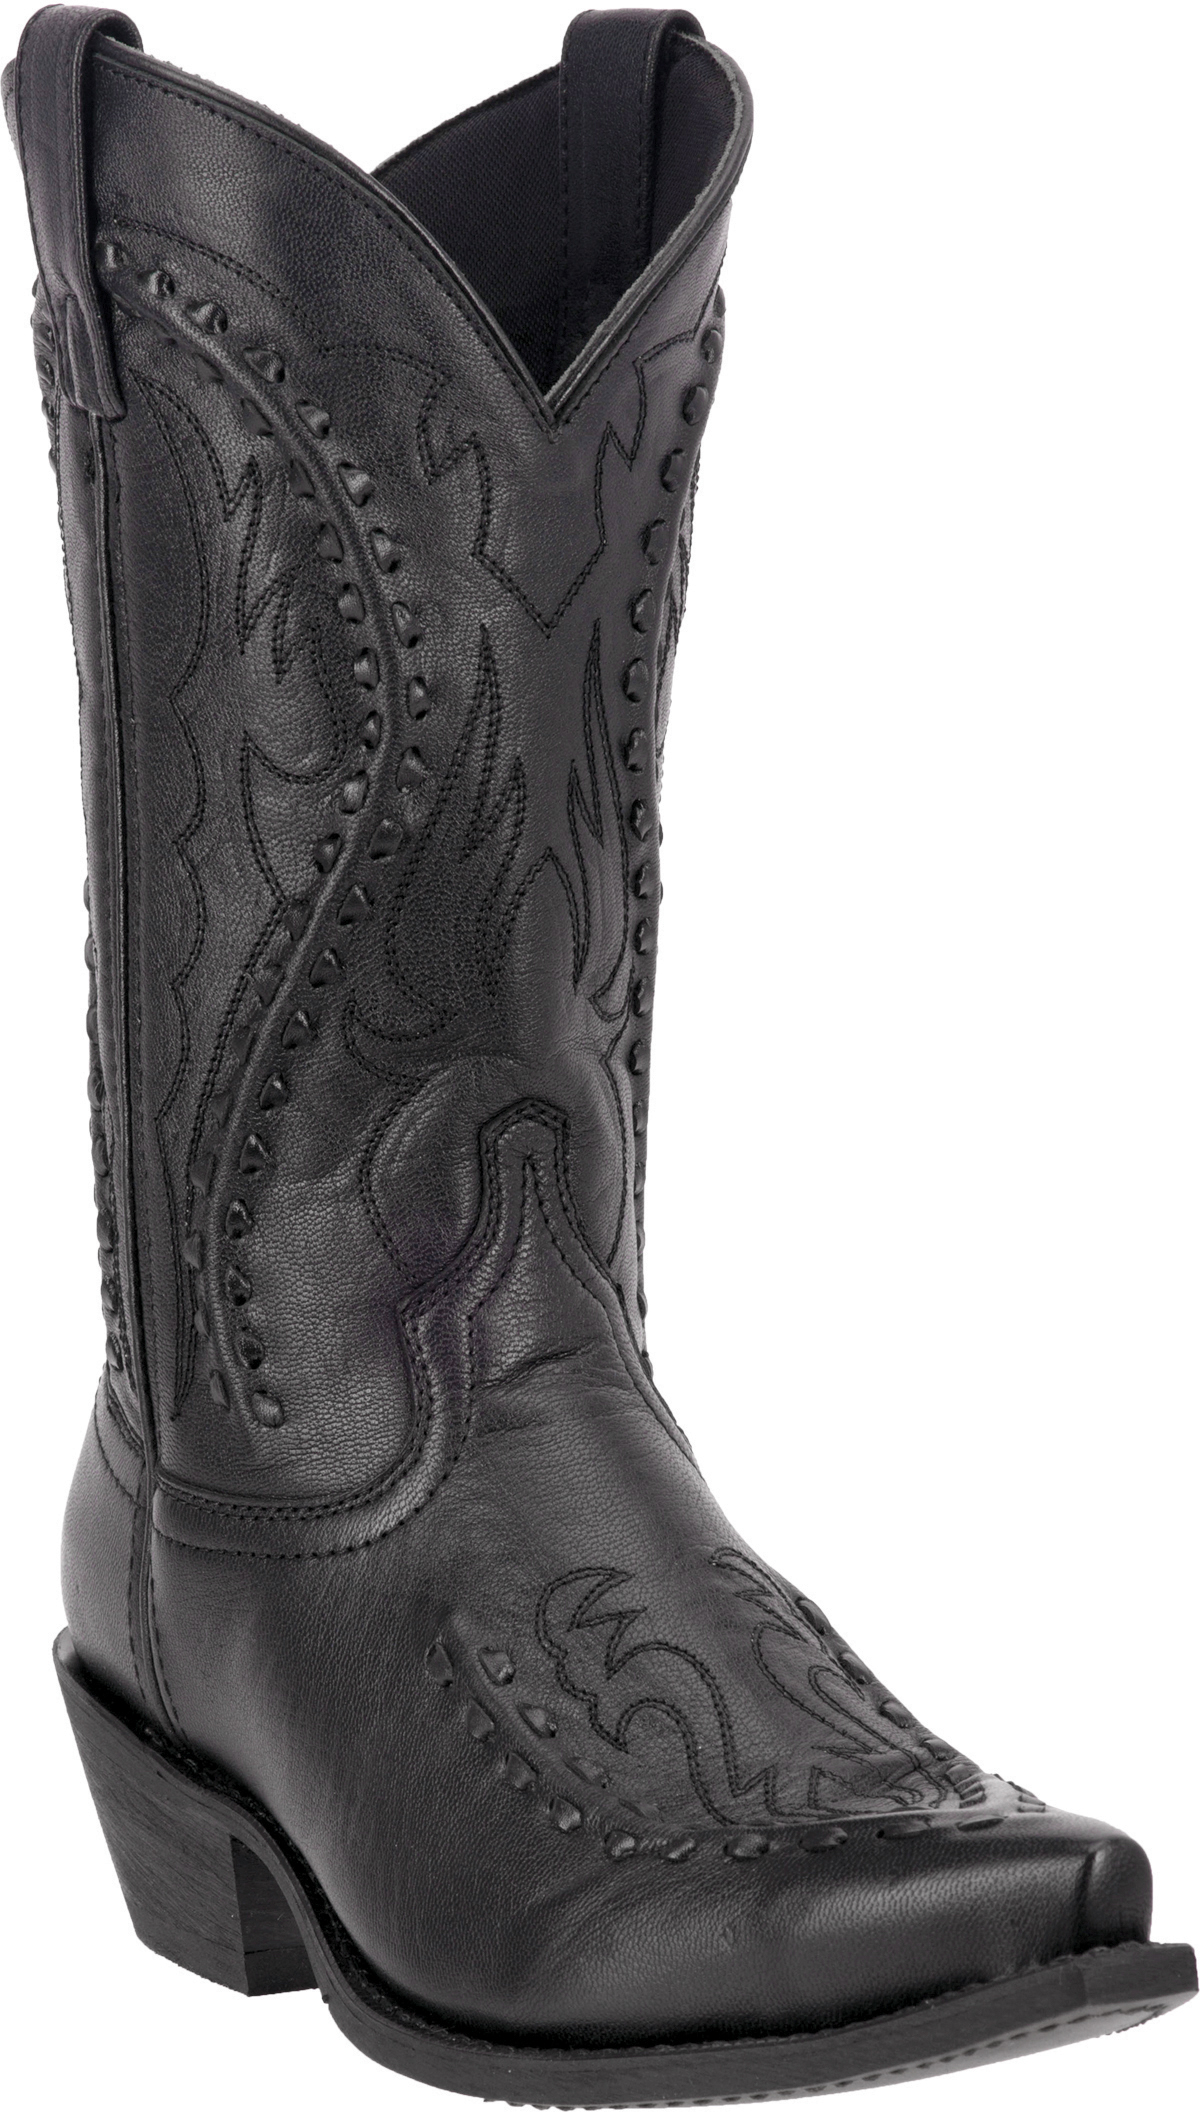 Cowboy Boots, Western Boots - Sheplers